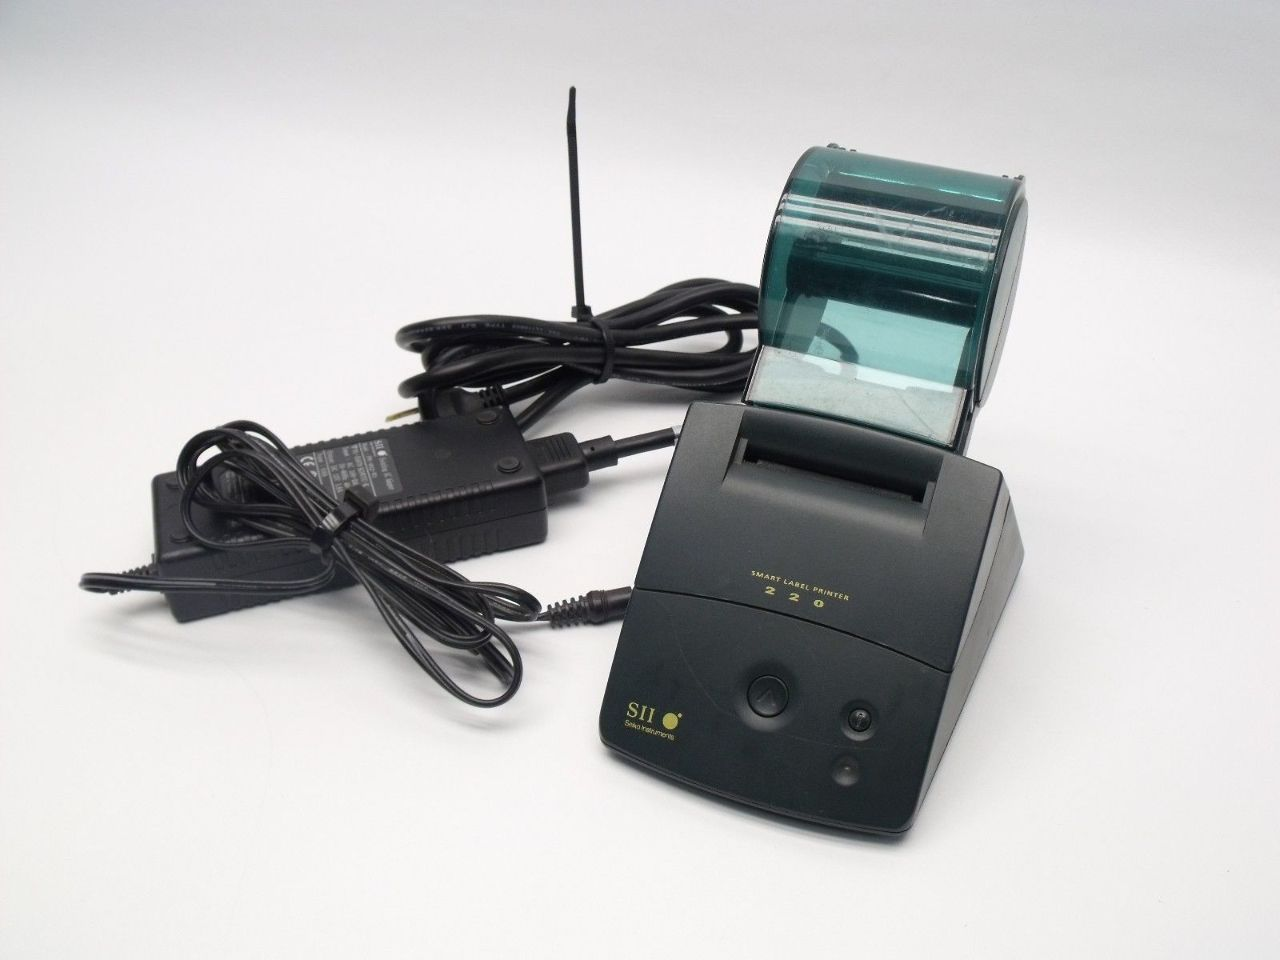 Seiko Sii Slp 220 Smart Thermal Label Printer Power